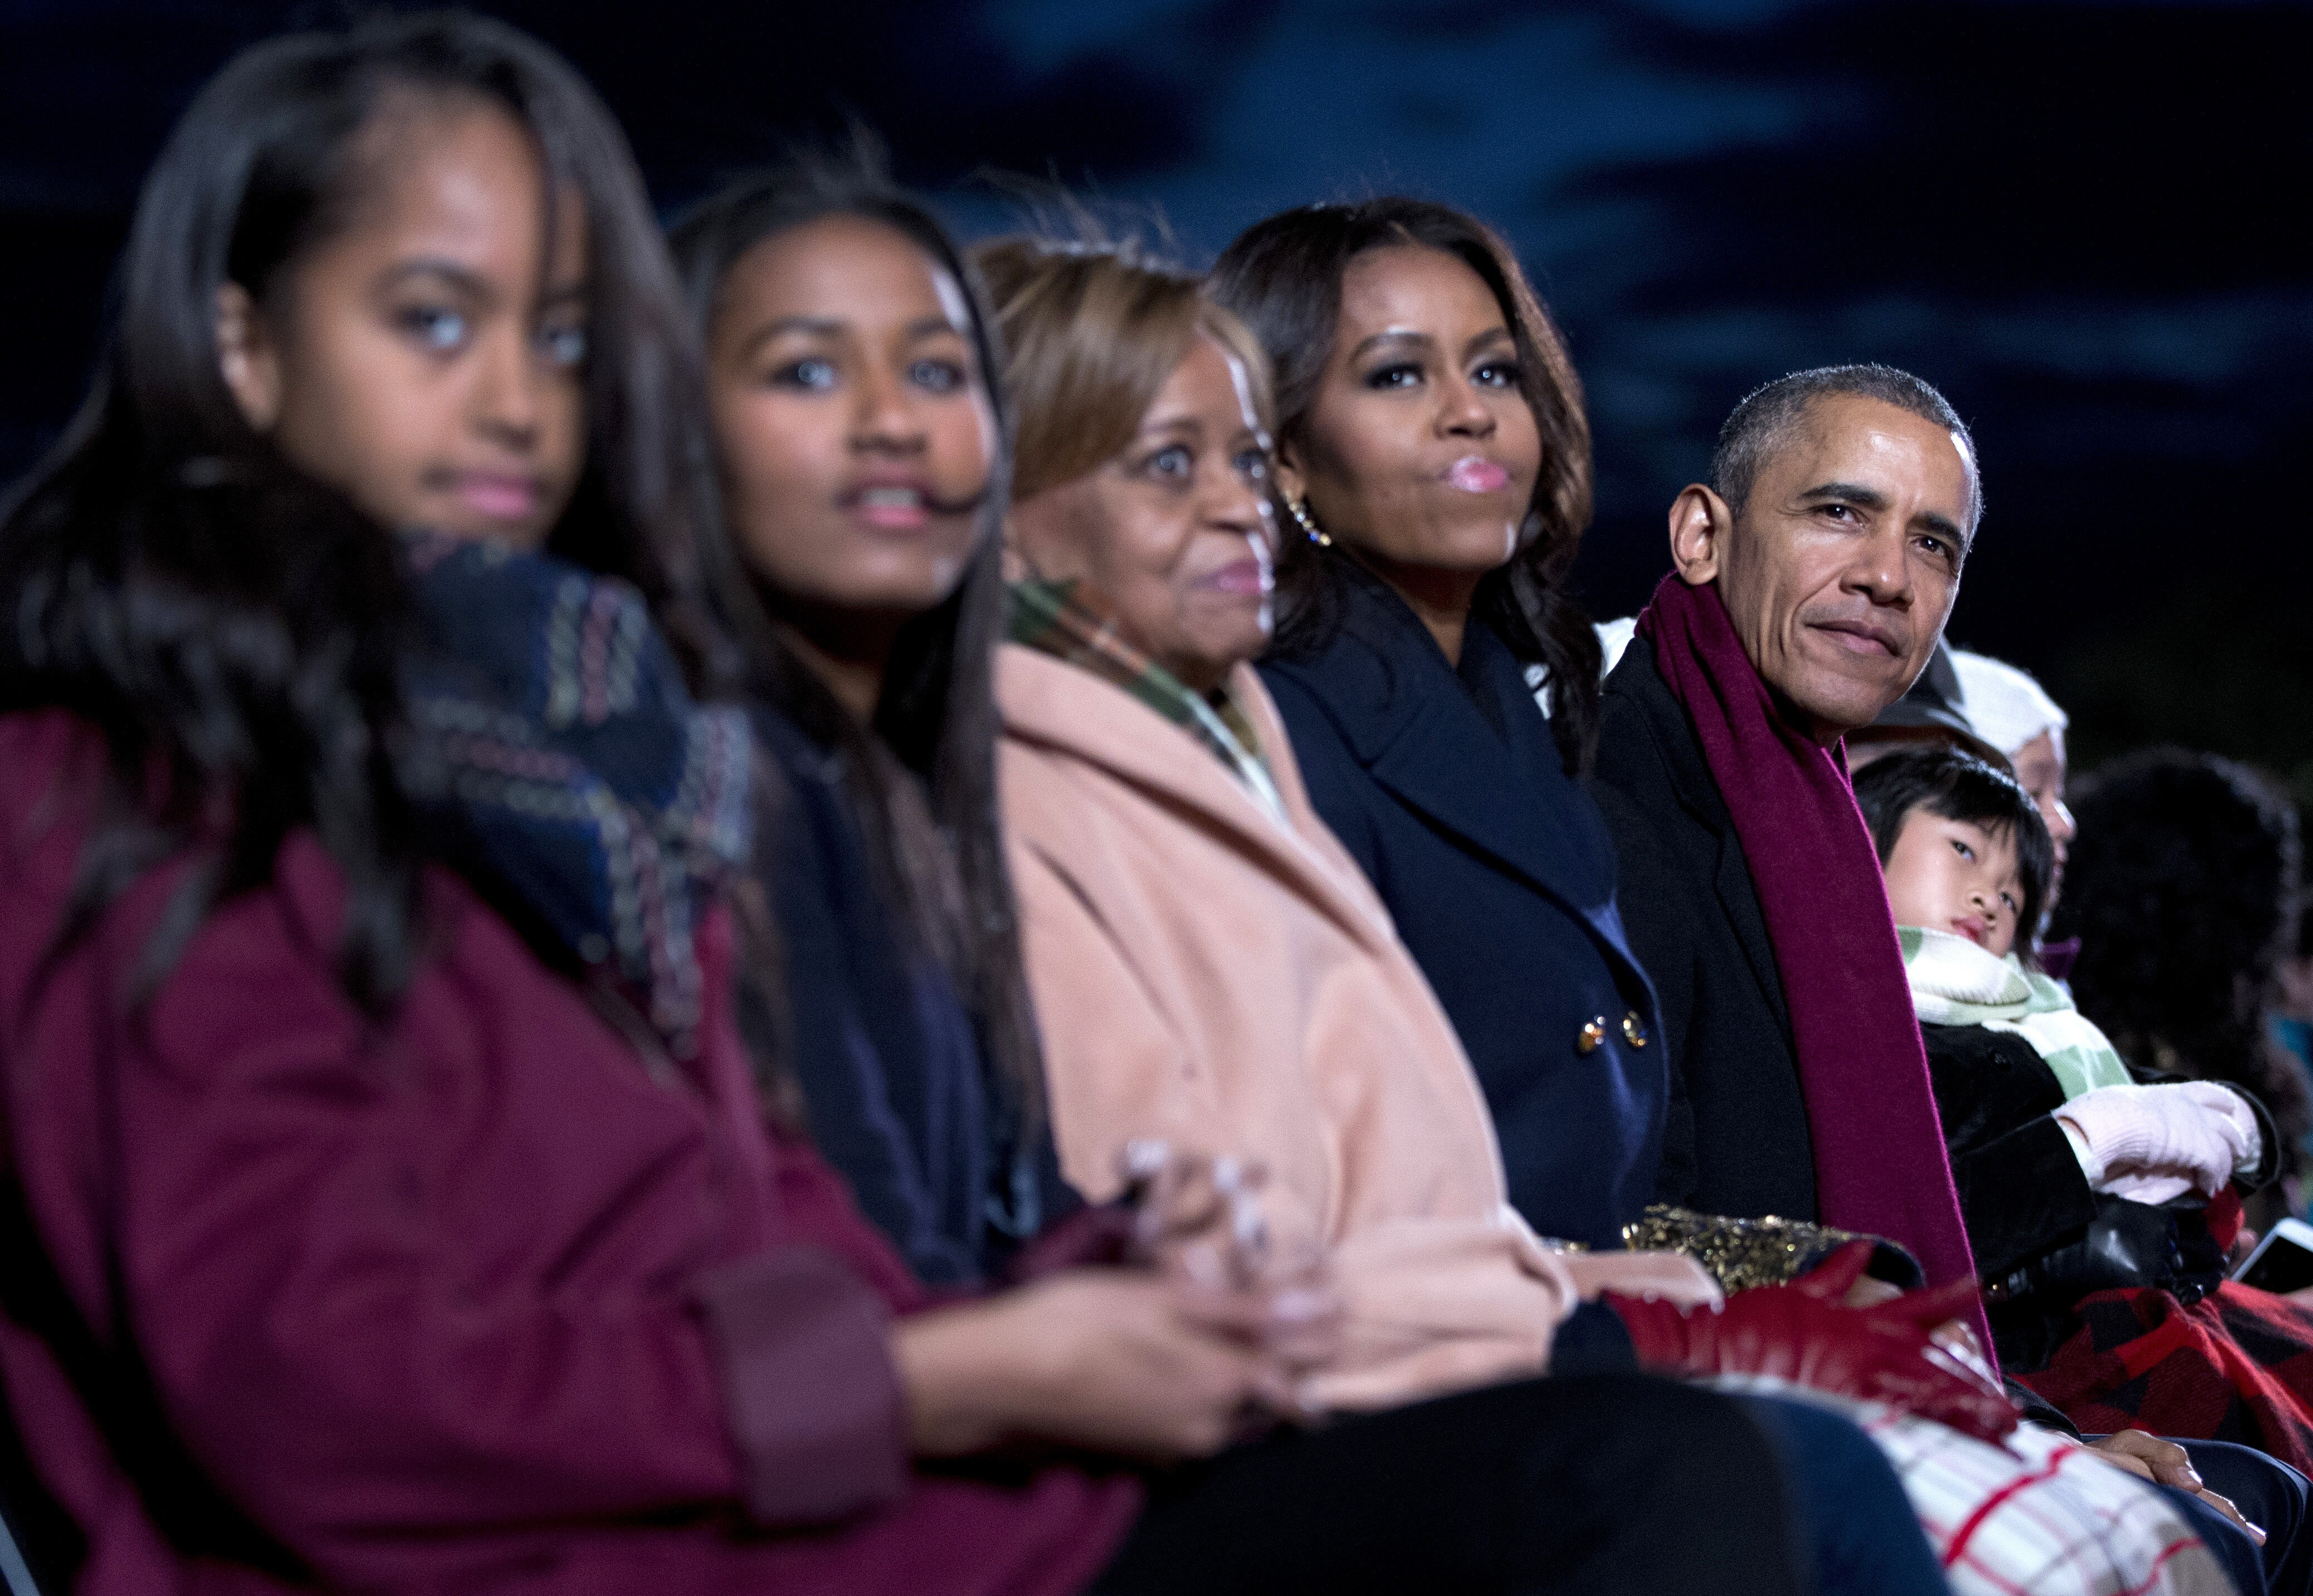 No Christmas presents for the first daughters